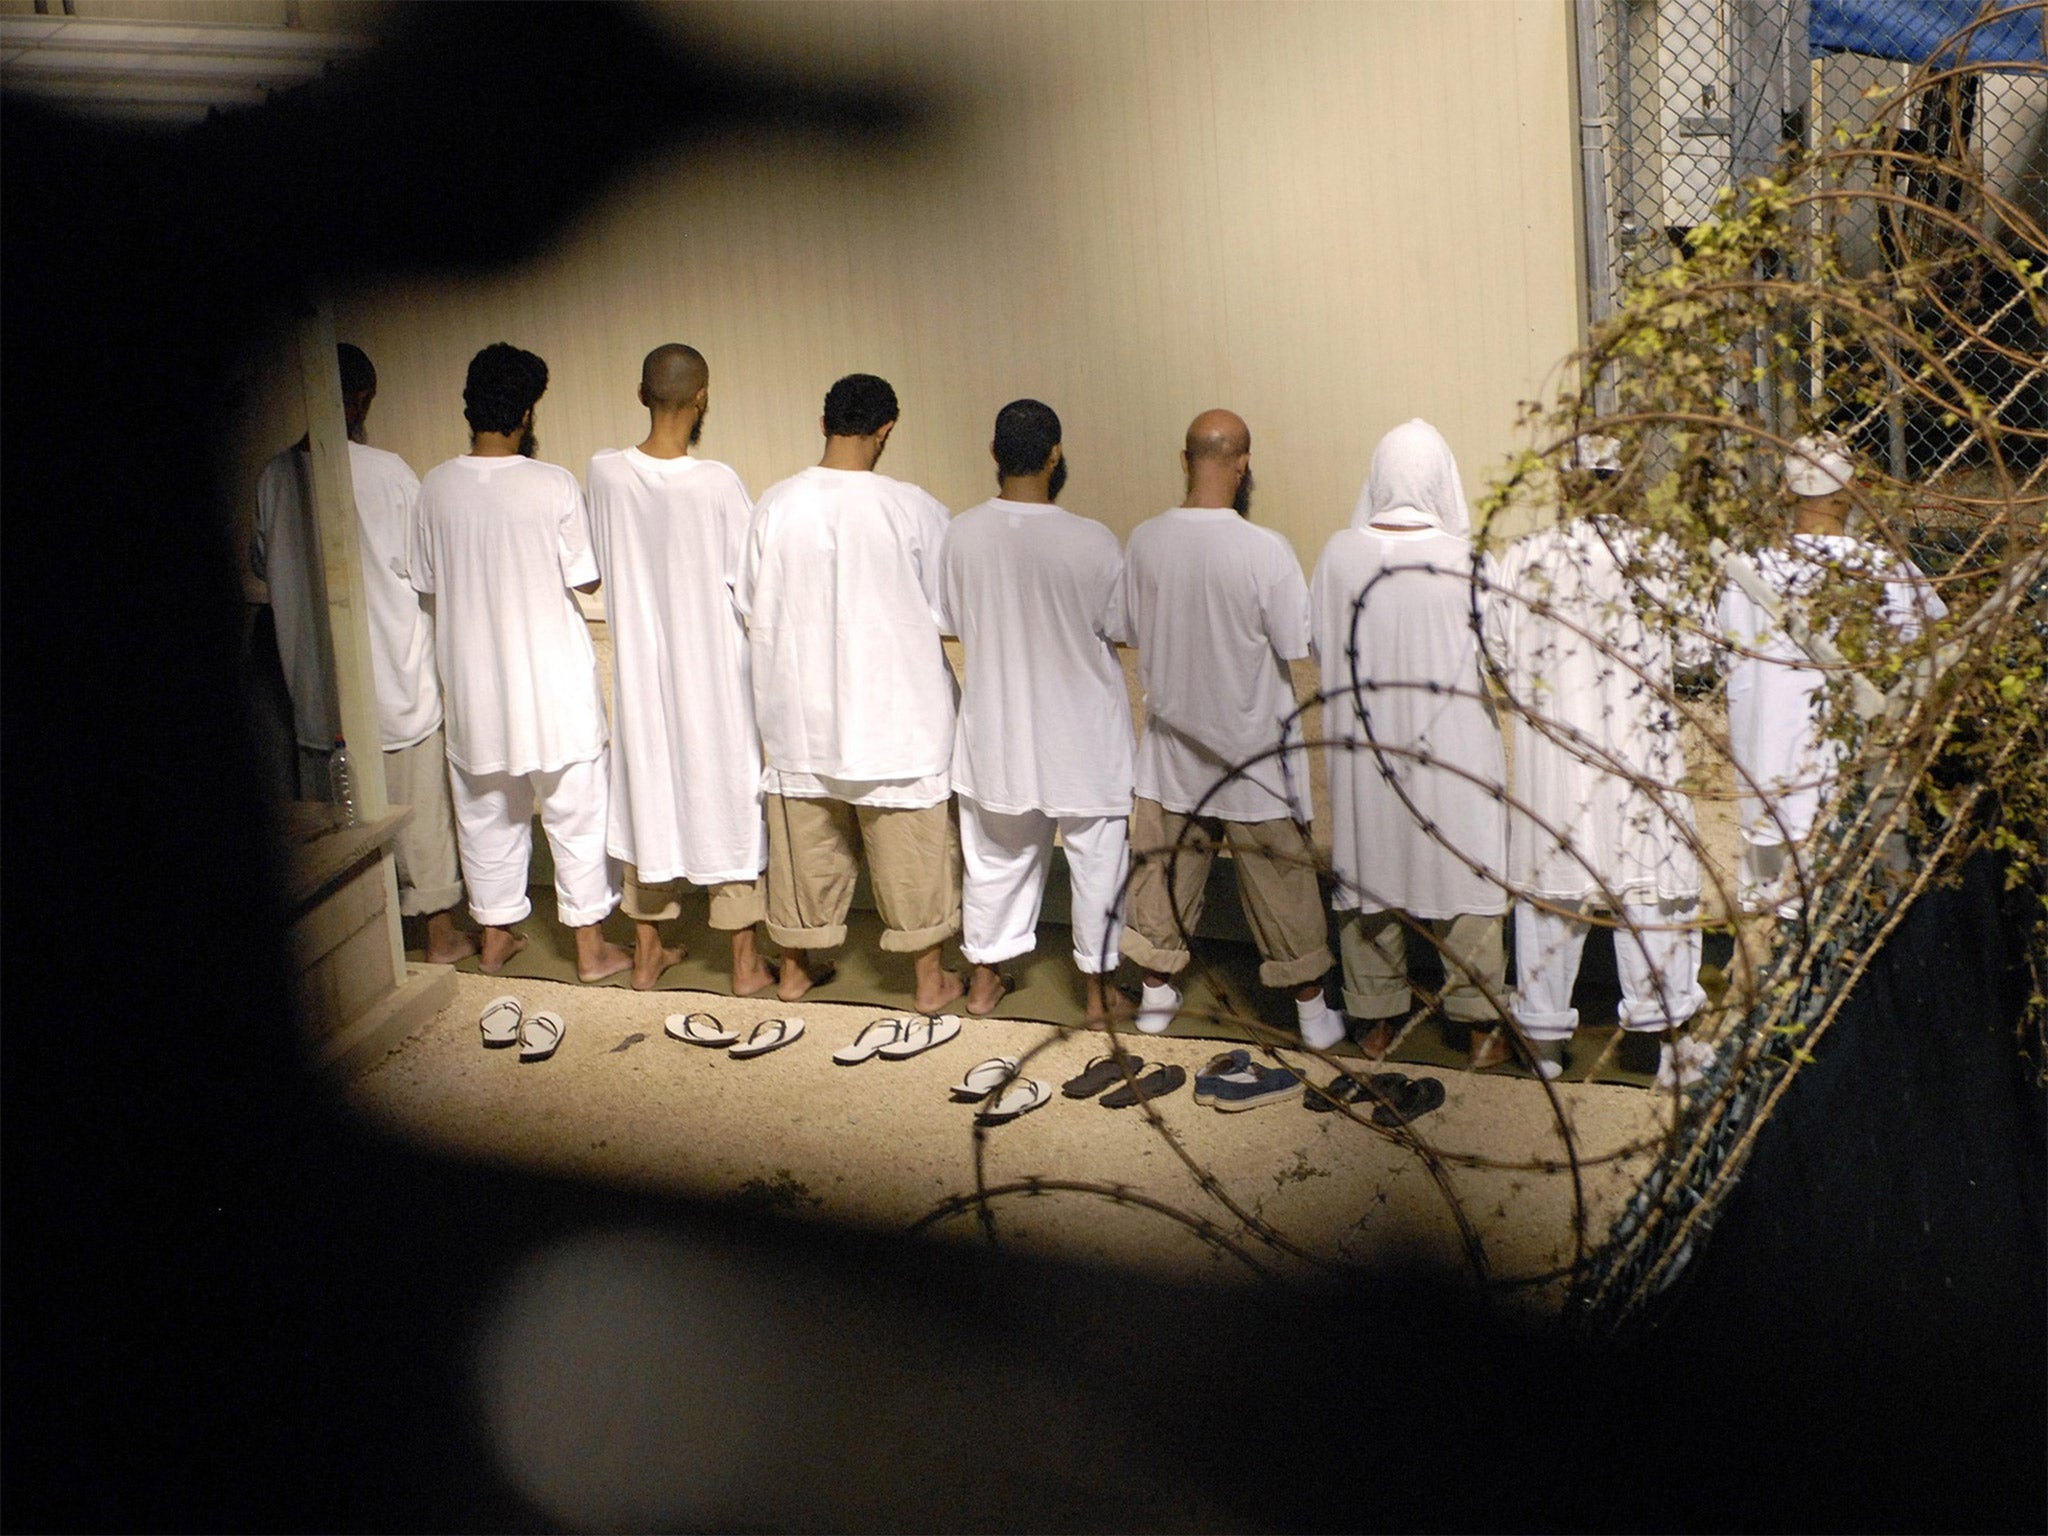 closing guantanamo bay essay Guantanamo bay - part 2 guantanamo bay (gitmo)is an essential base for the united states of america and should stay open for many reasons some people believe the base is unethical, not on american soil and costs to.